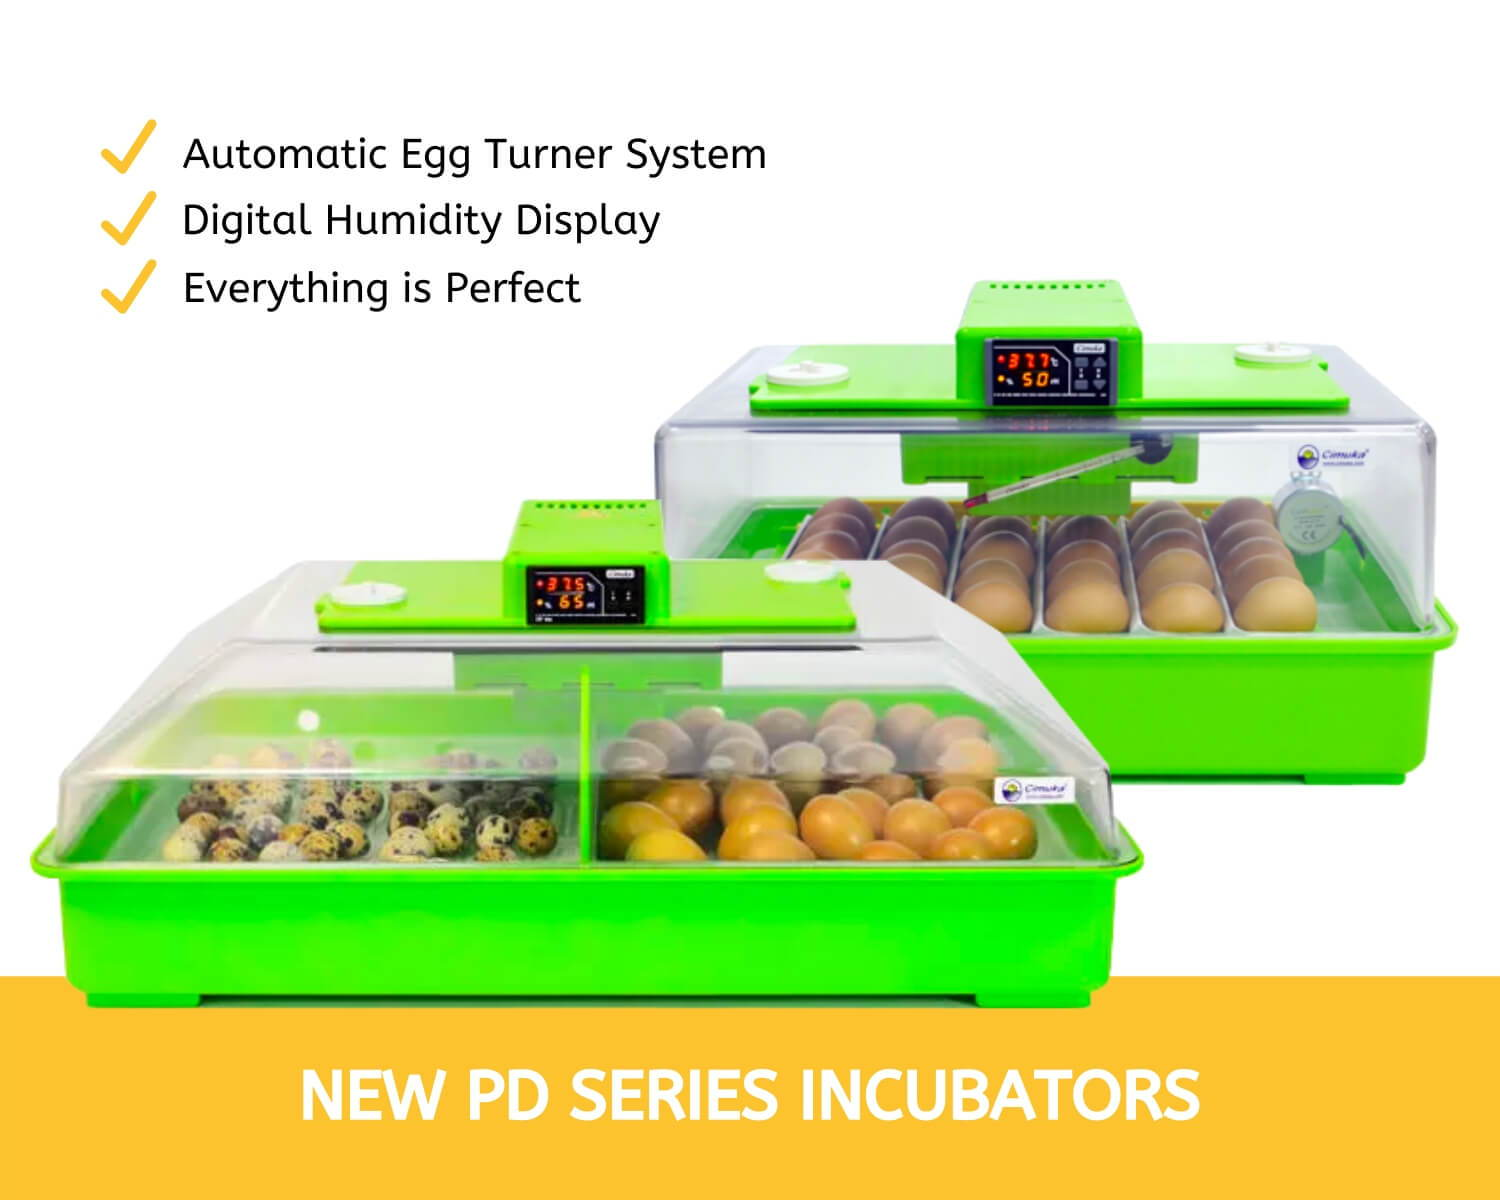 PD30 & PD60 Incubators - Cimuka Hatching Time